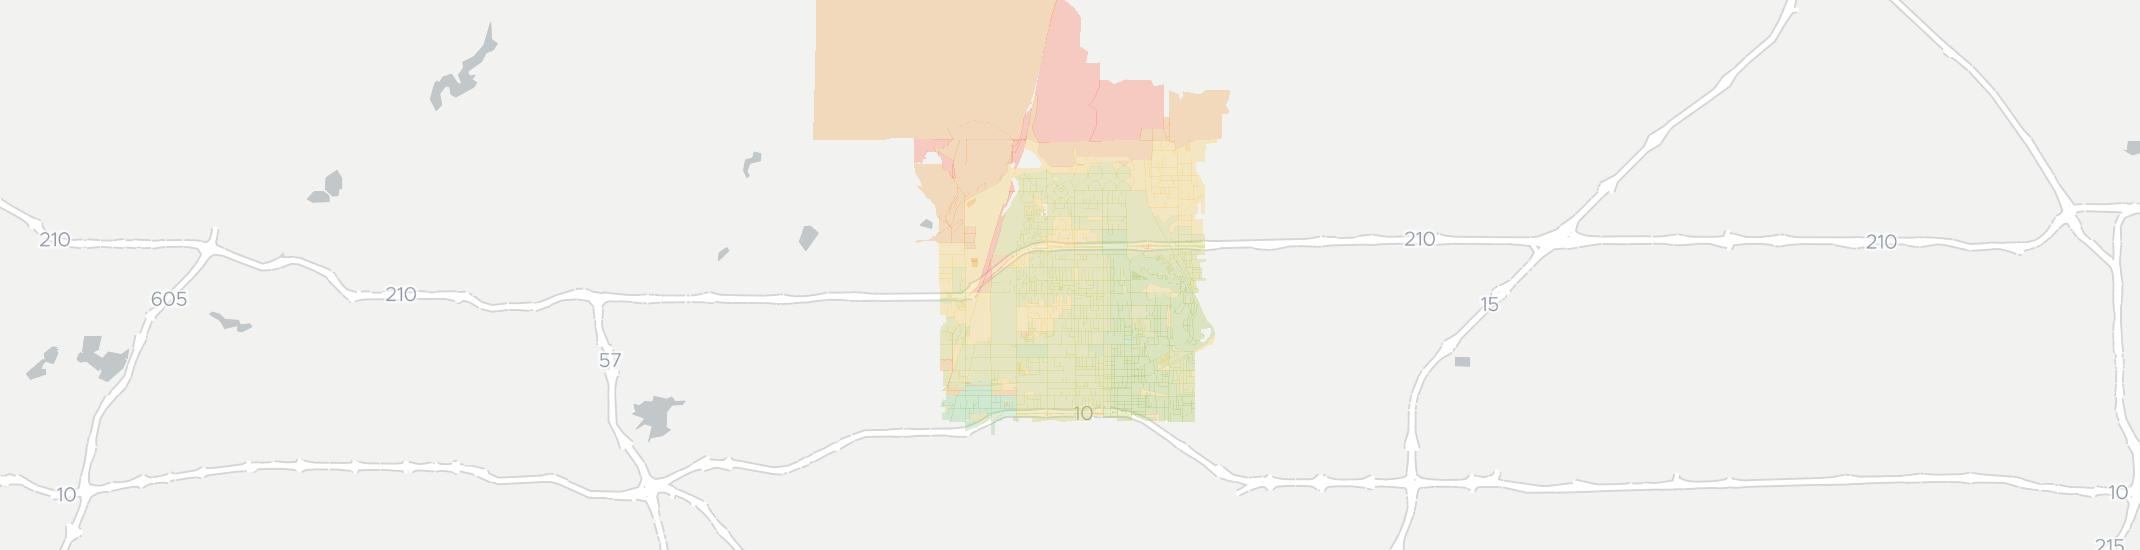 Upland Zip Code Map.Internet Providers In Upland Ca Compare 20 Providers